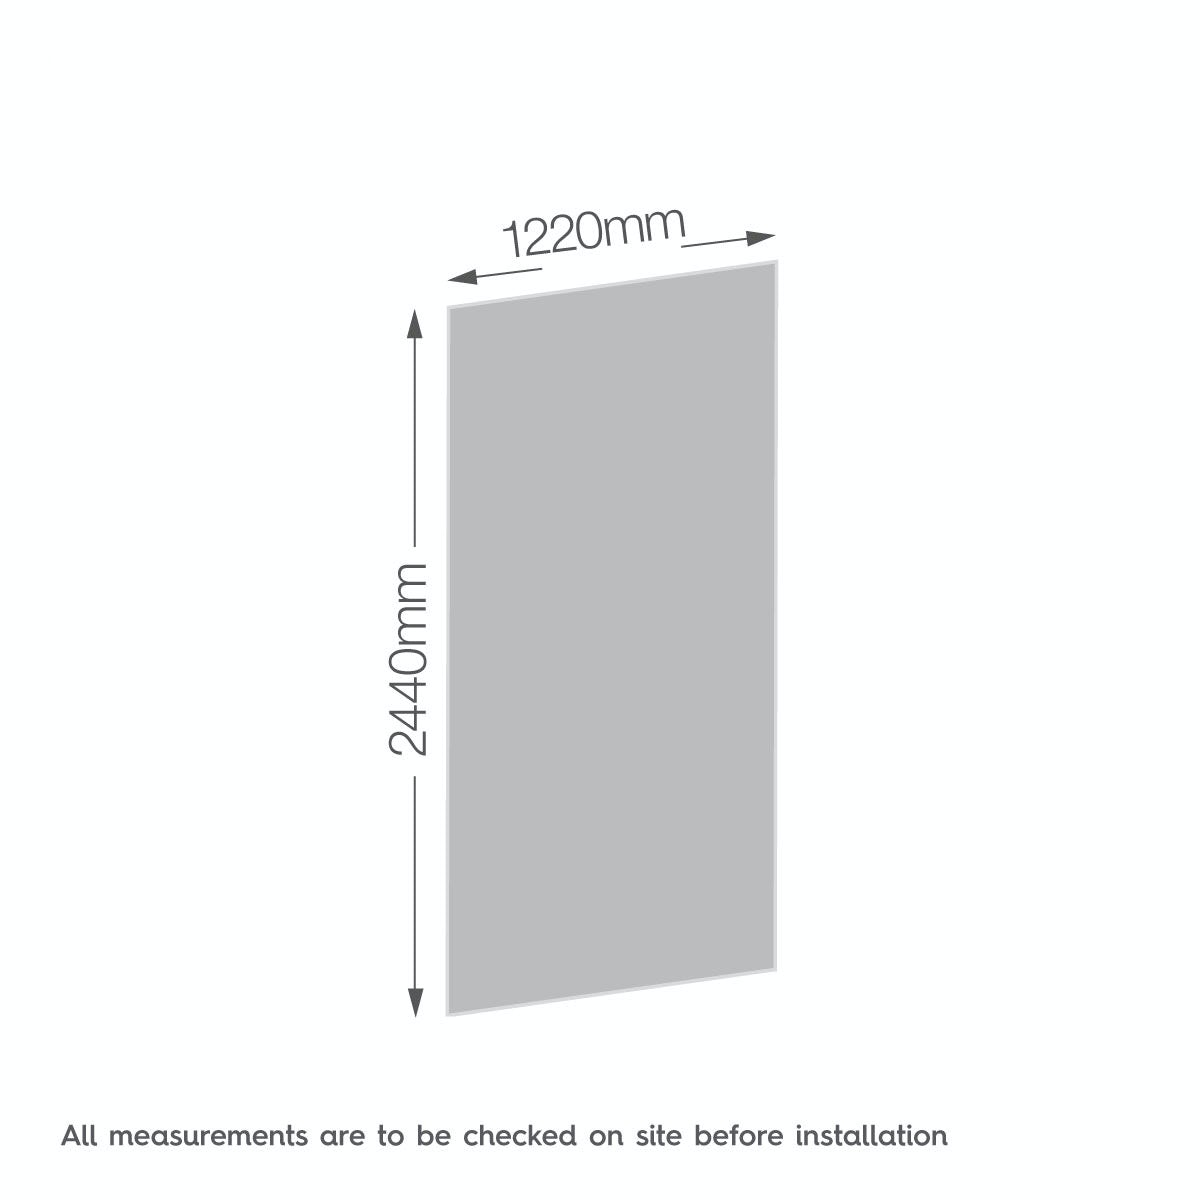 Dimensions for Zenolite plus ash acrylic shower wall panel 2440 x 1220